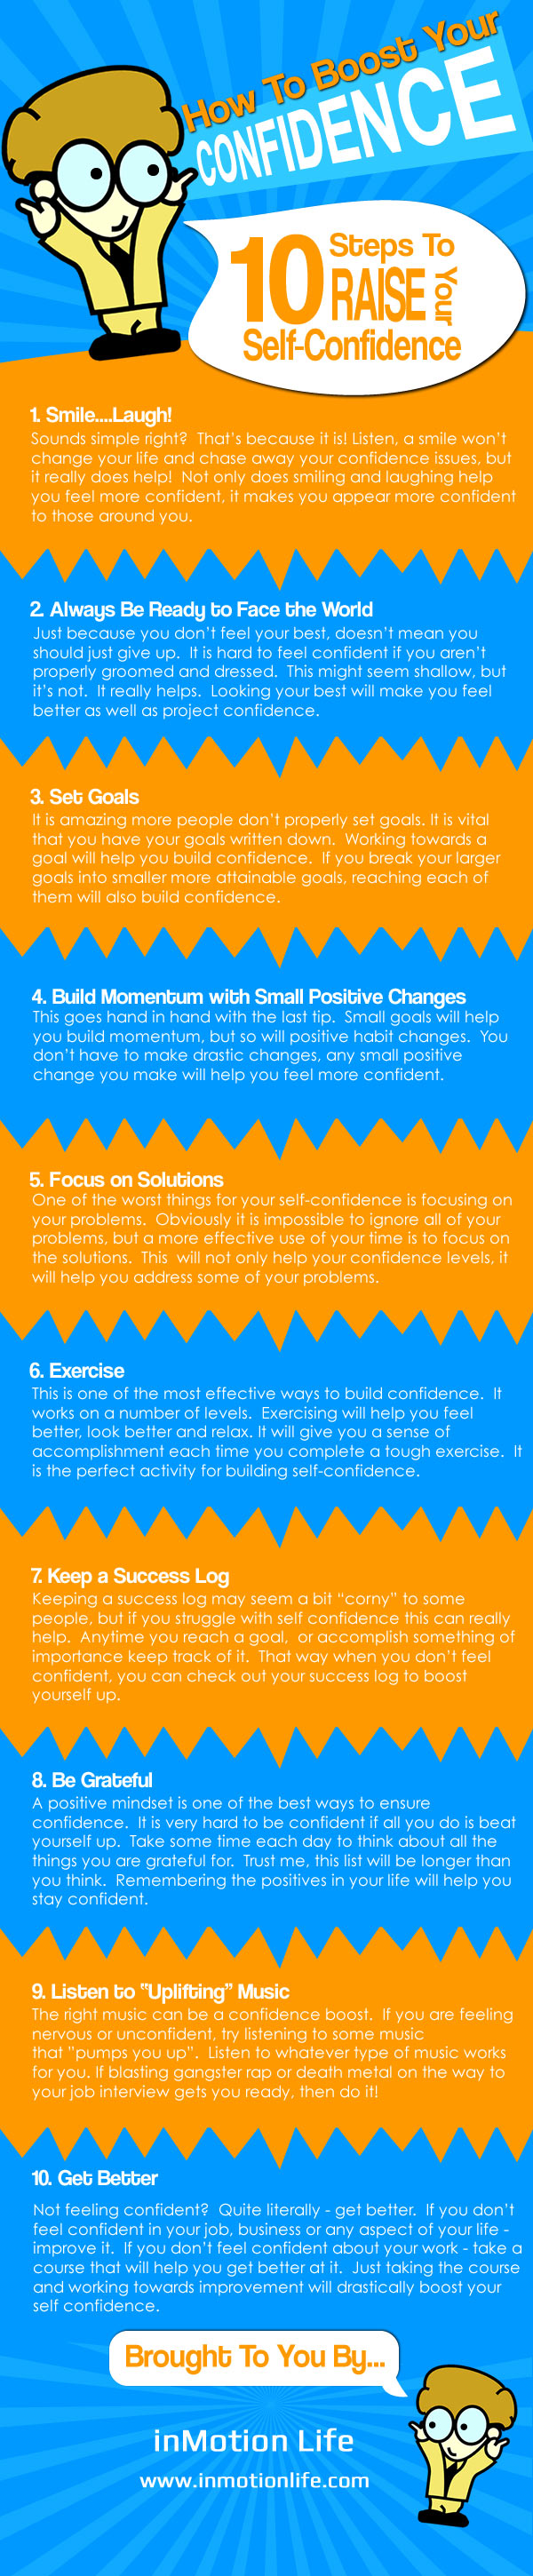 How to Boost Your Confidence Infographic